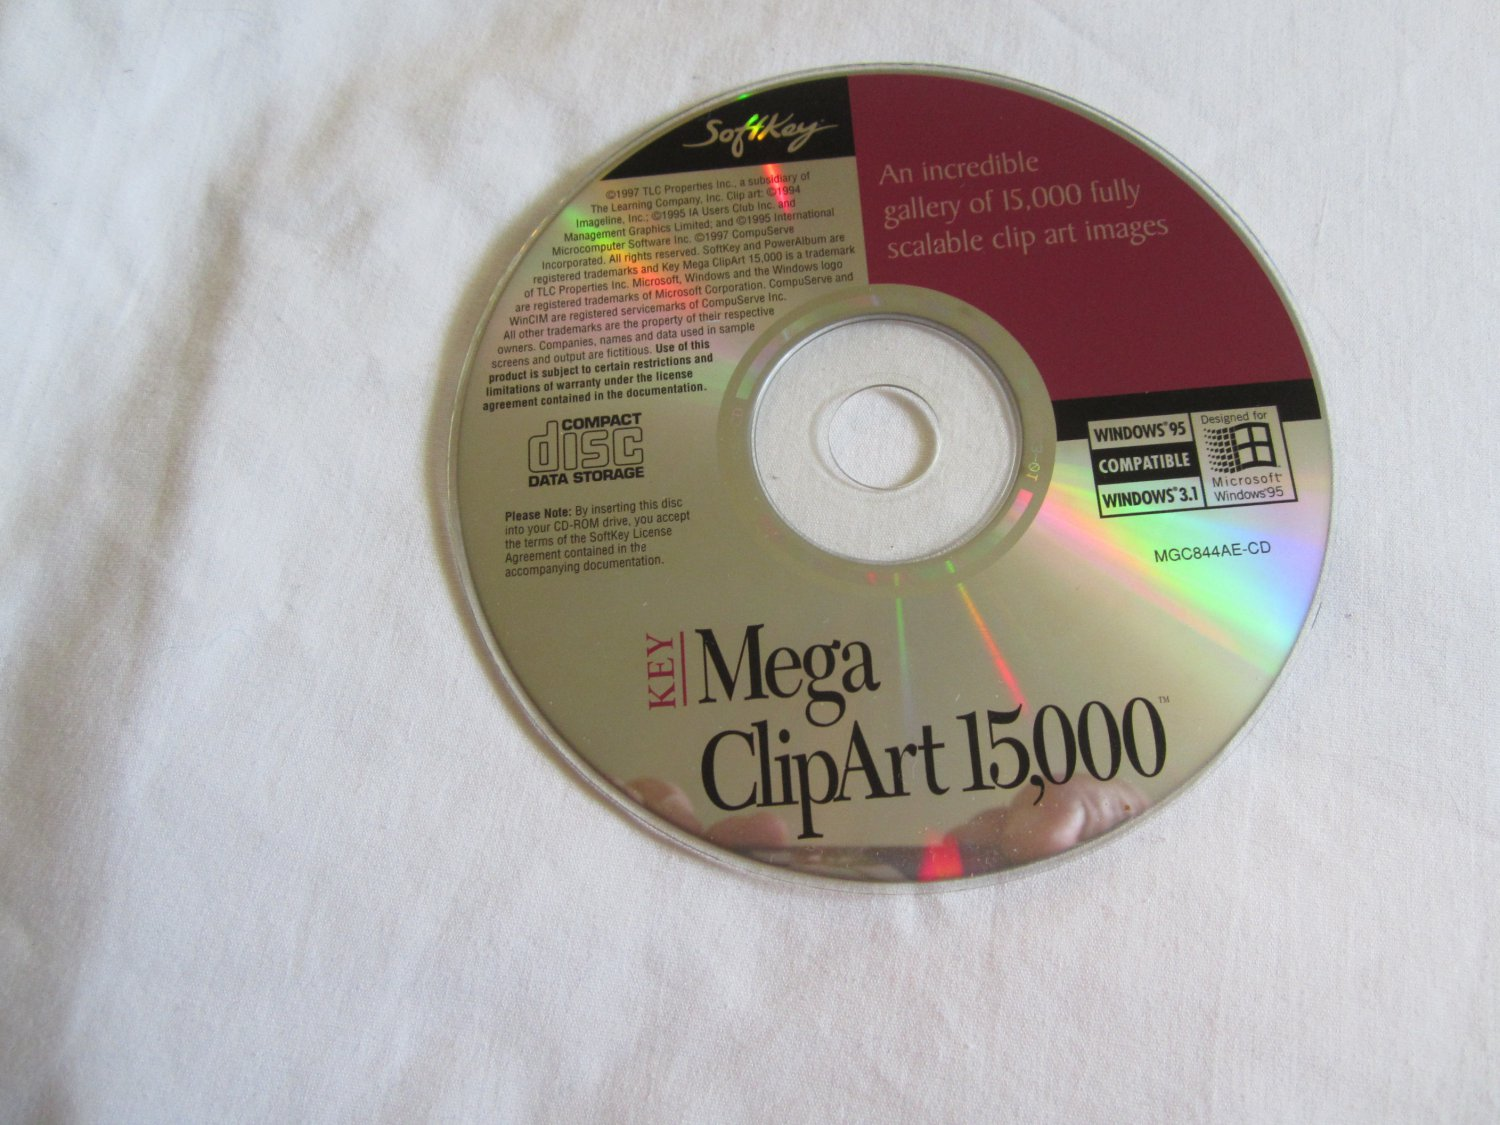 Key Mega ClipArt 15,000 CD ROM windows 95 / compatible / windows 3.1